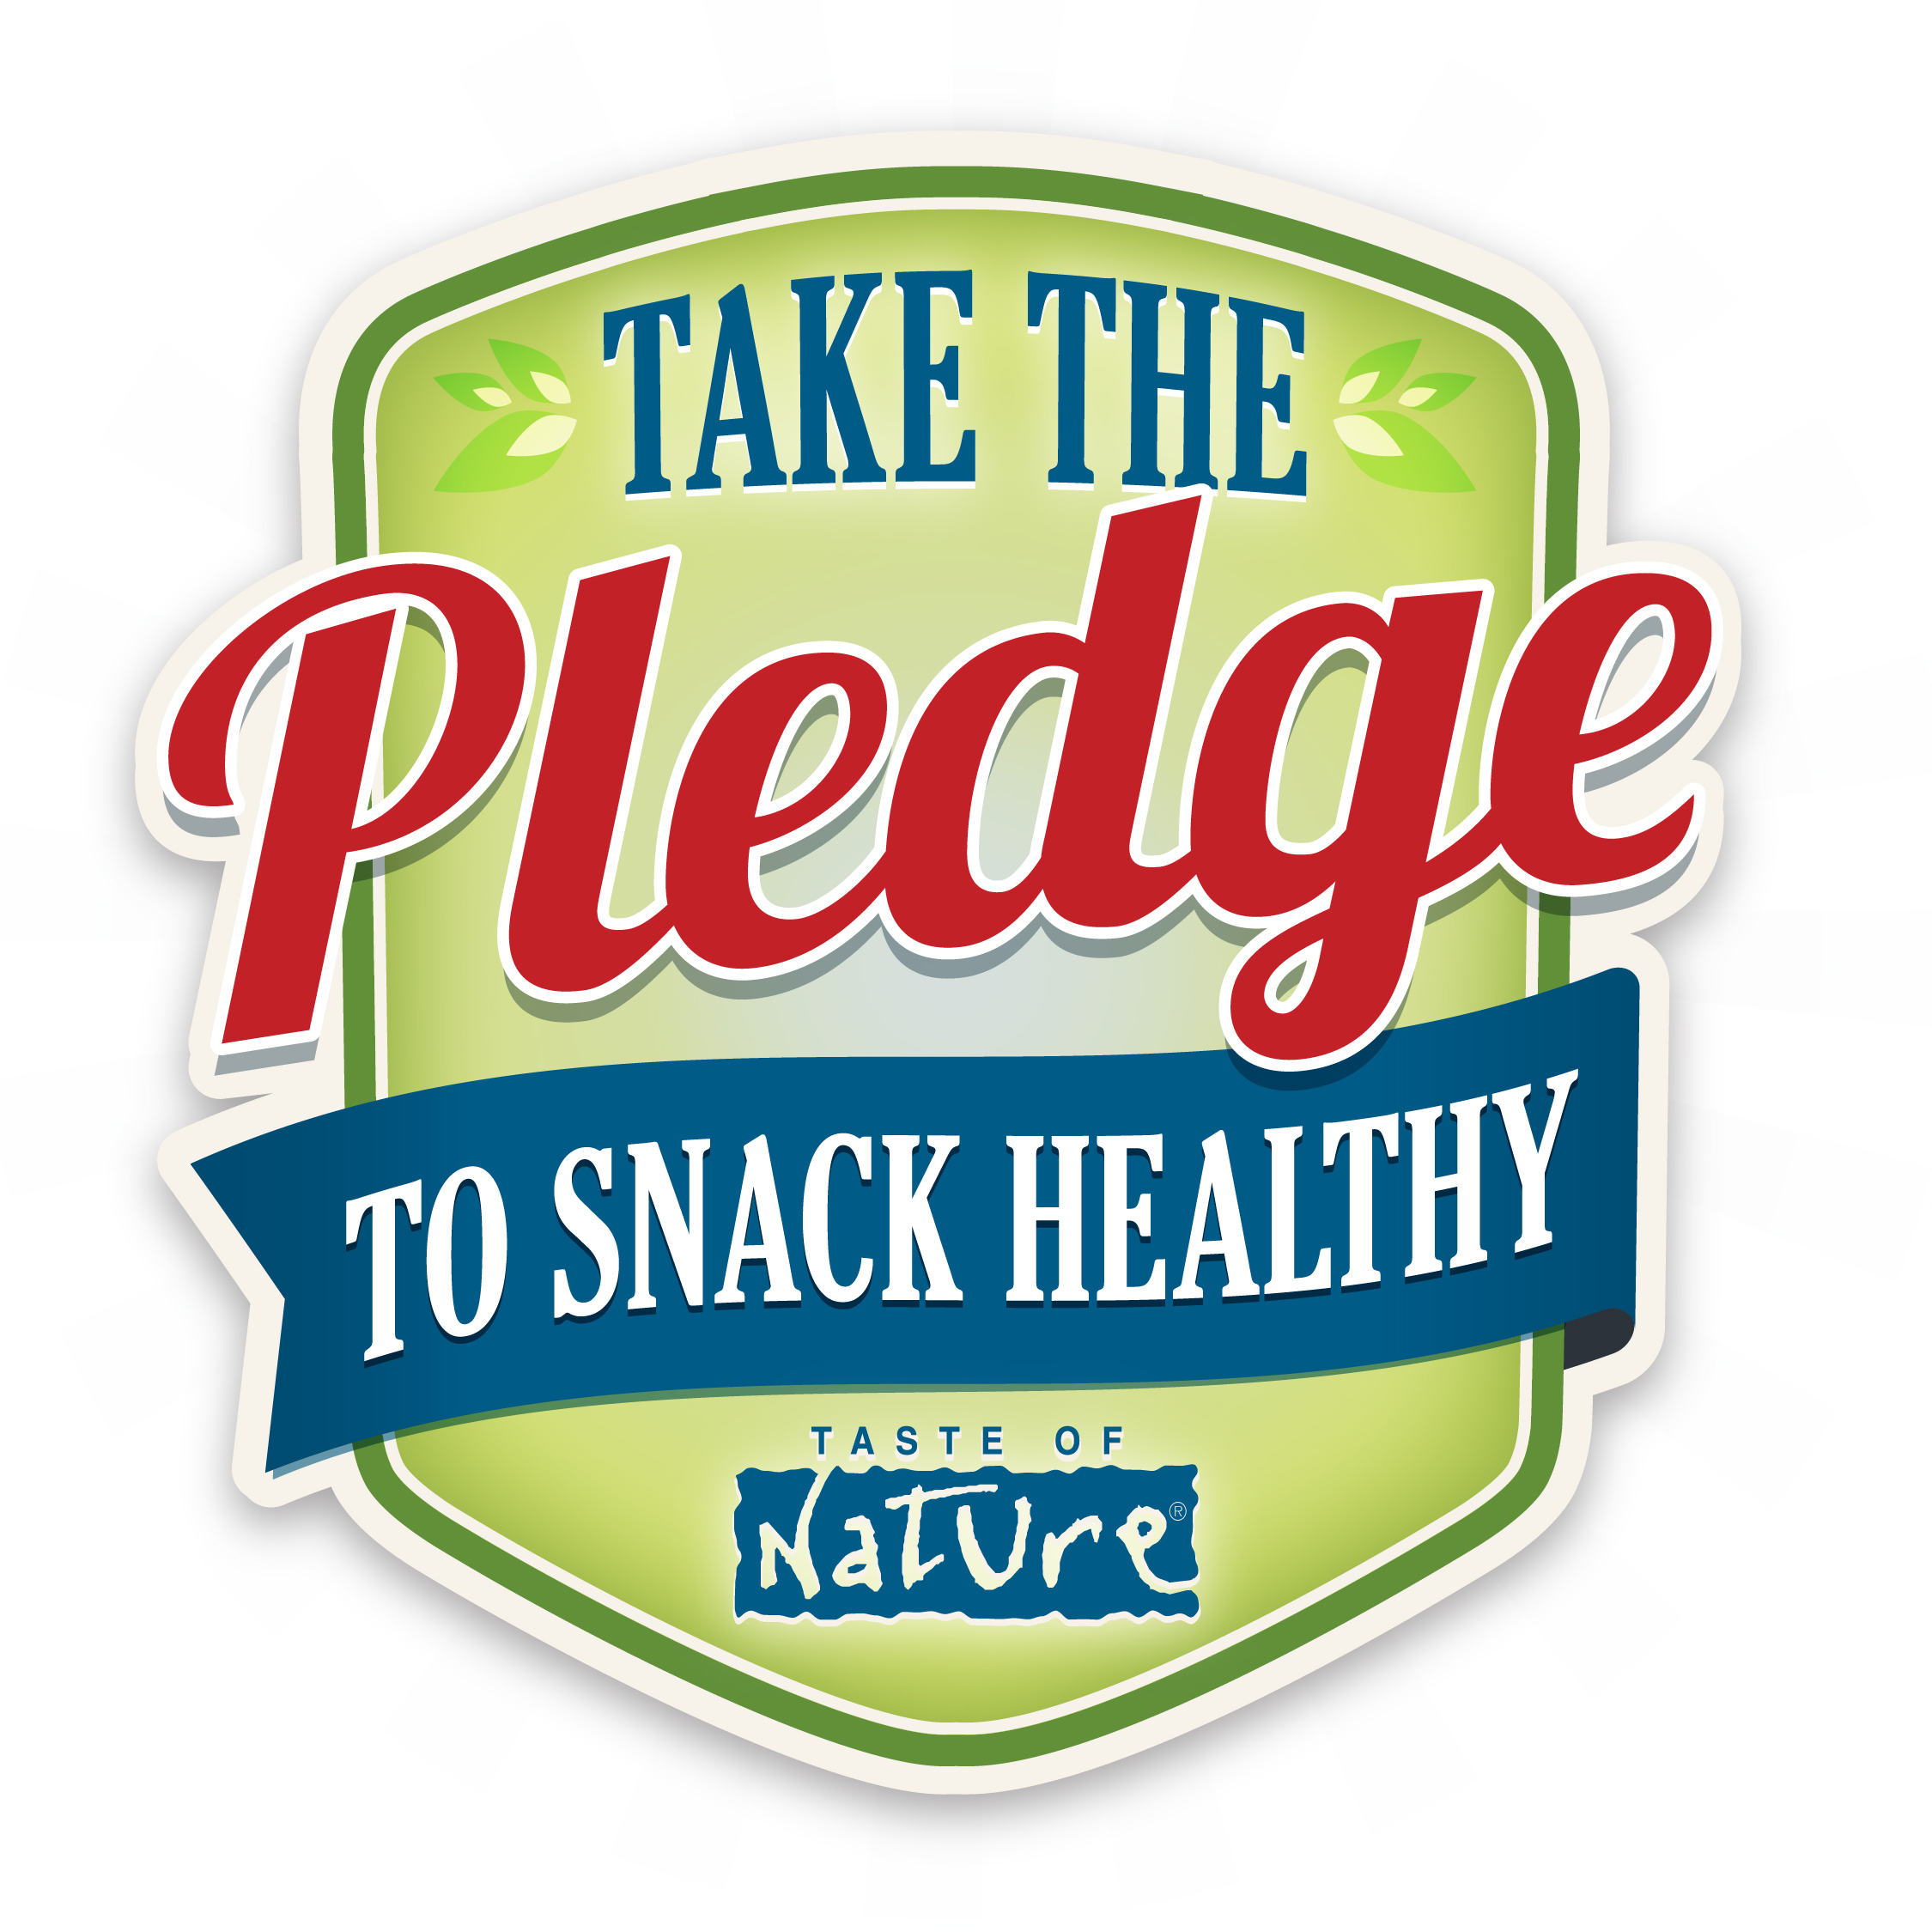 Take the Pledge with Taste of Nature